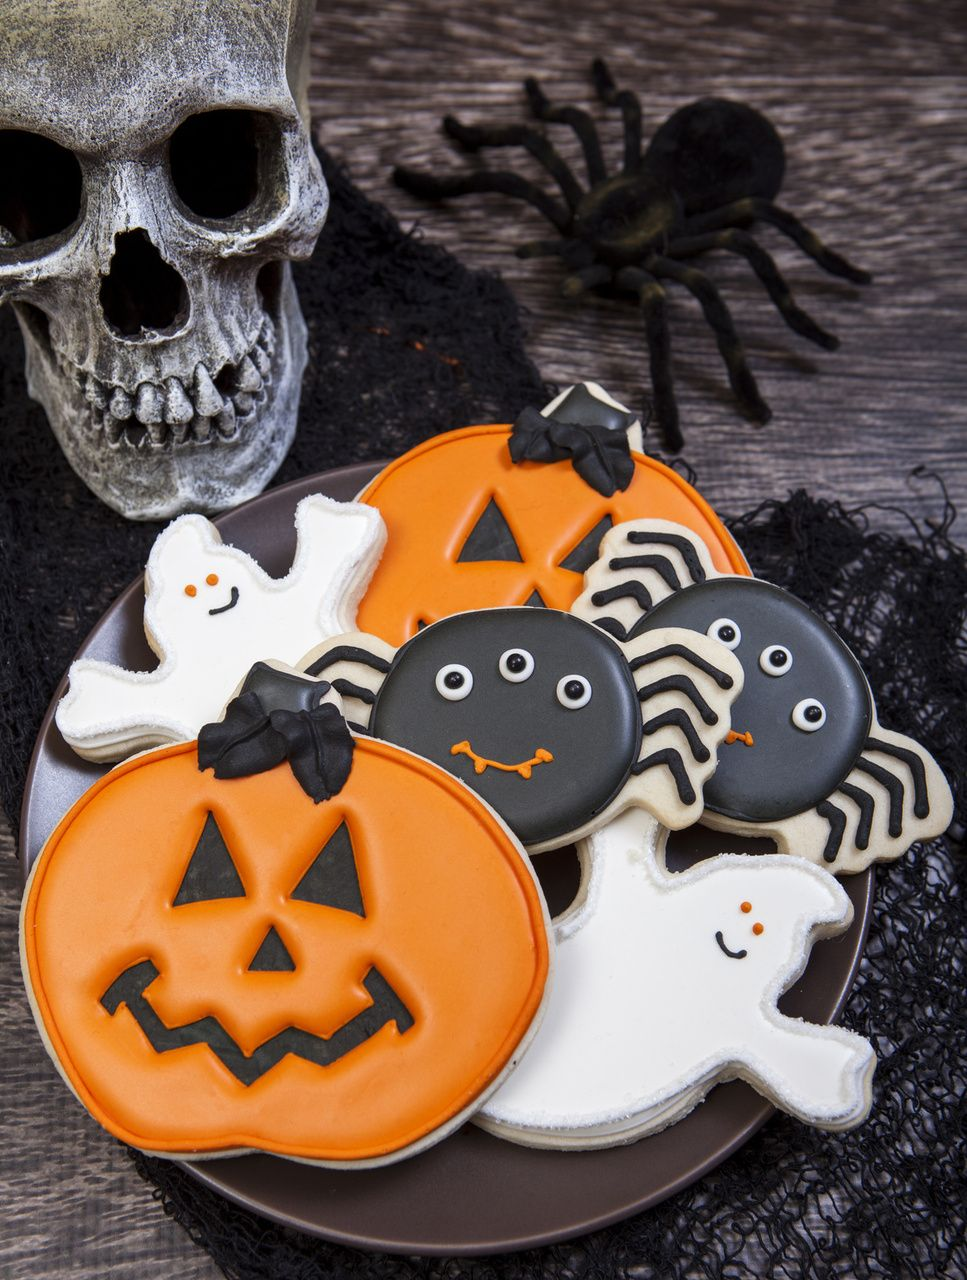 Spooky Cookie Halloween Cookie Decorations